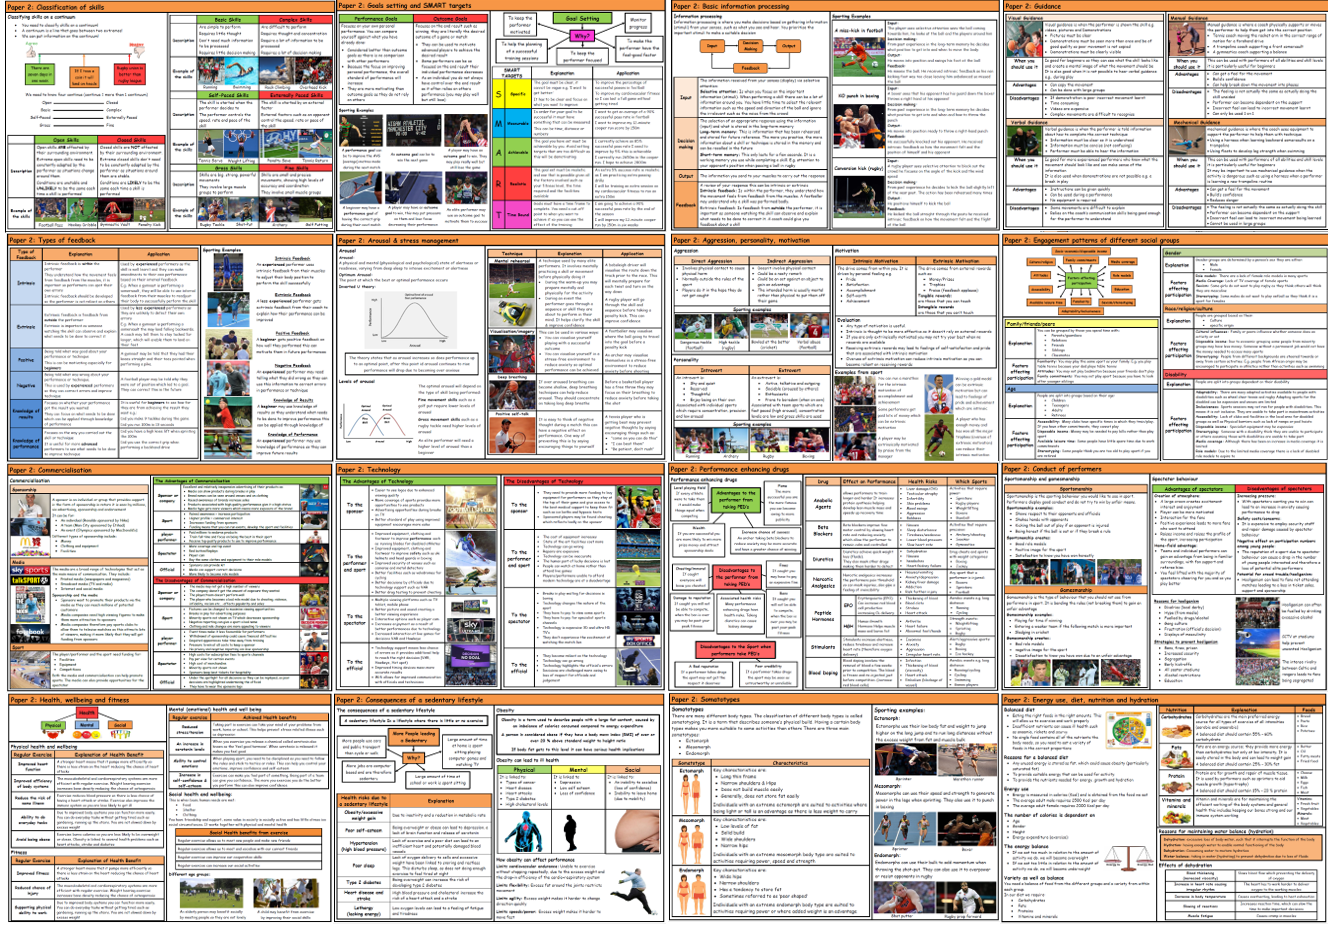 GCSE PE – AQA (9-1) – Complete Paper 2 - Knowledge Organisers/Revision Mats